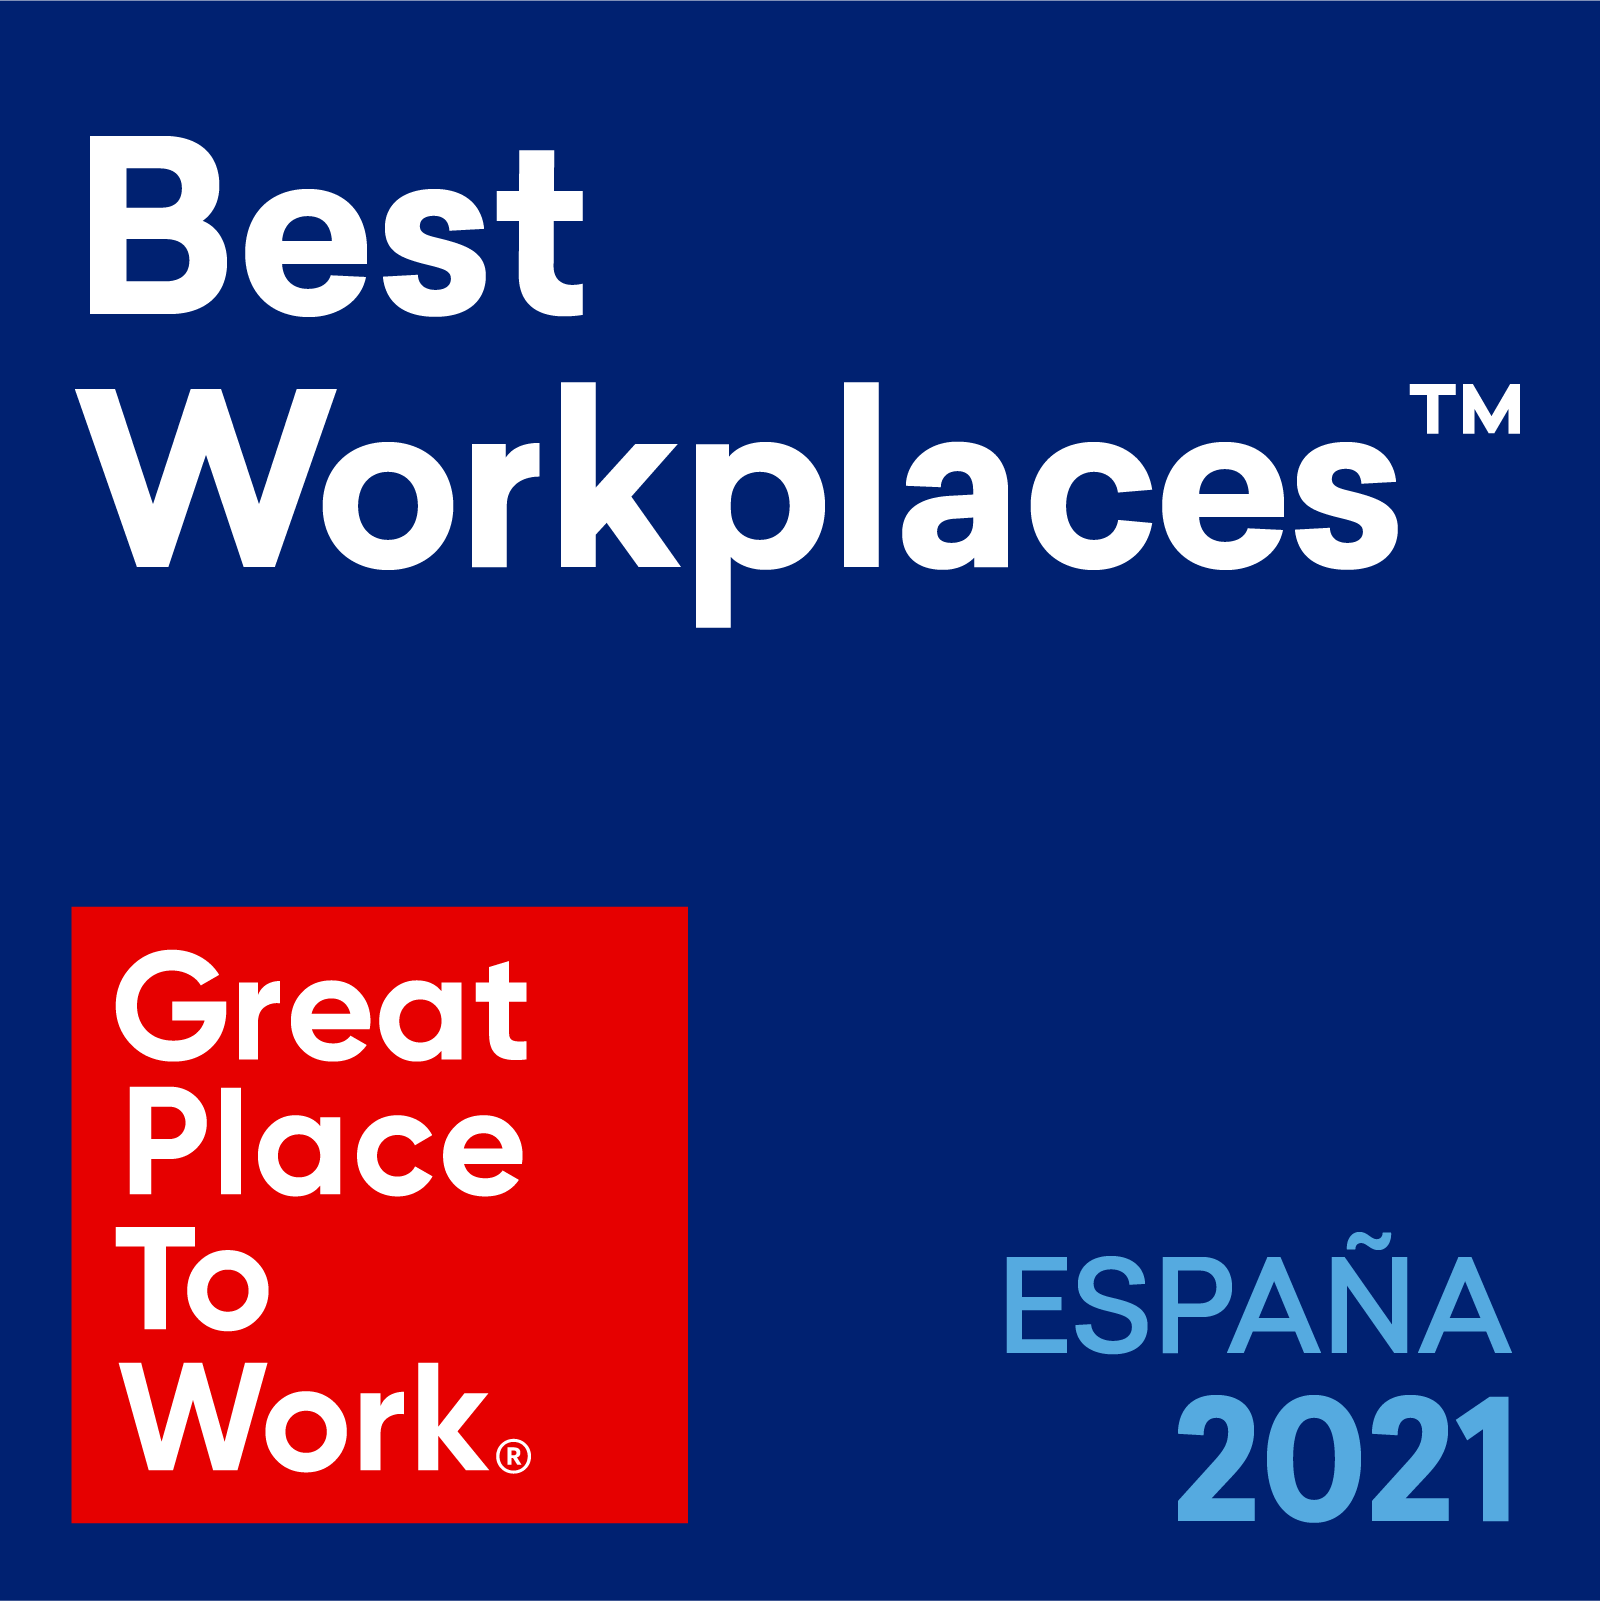 Great PlaceTo Work